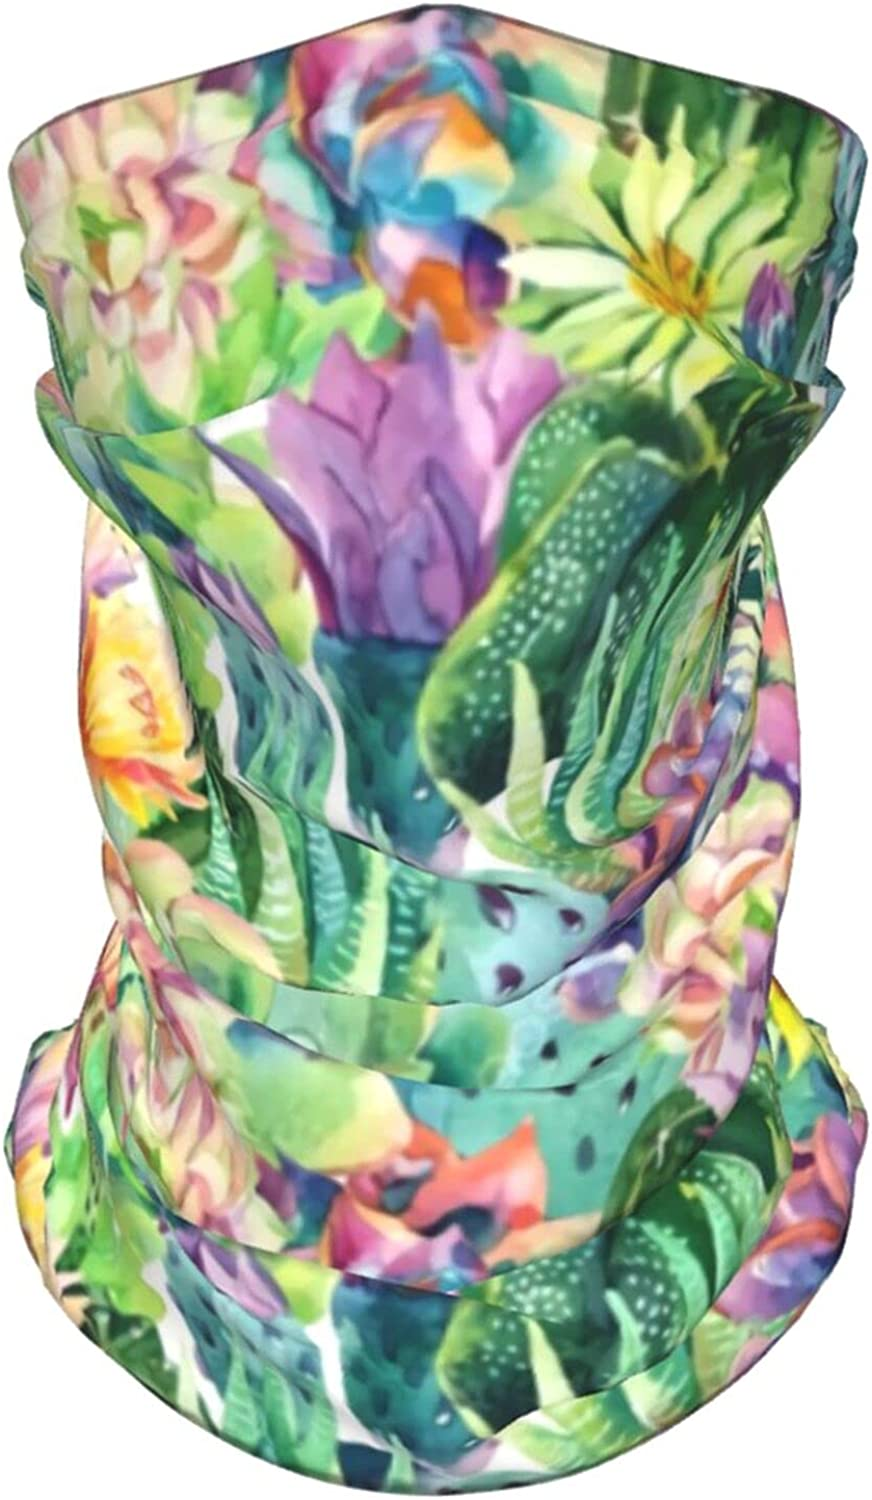 Cactus Flowers Succulents Neck Gaiter Multipurpose Headwear Ice Silk Mask Scarf Summer Cool Breathable Outdoor Sport 4 Pcs